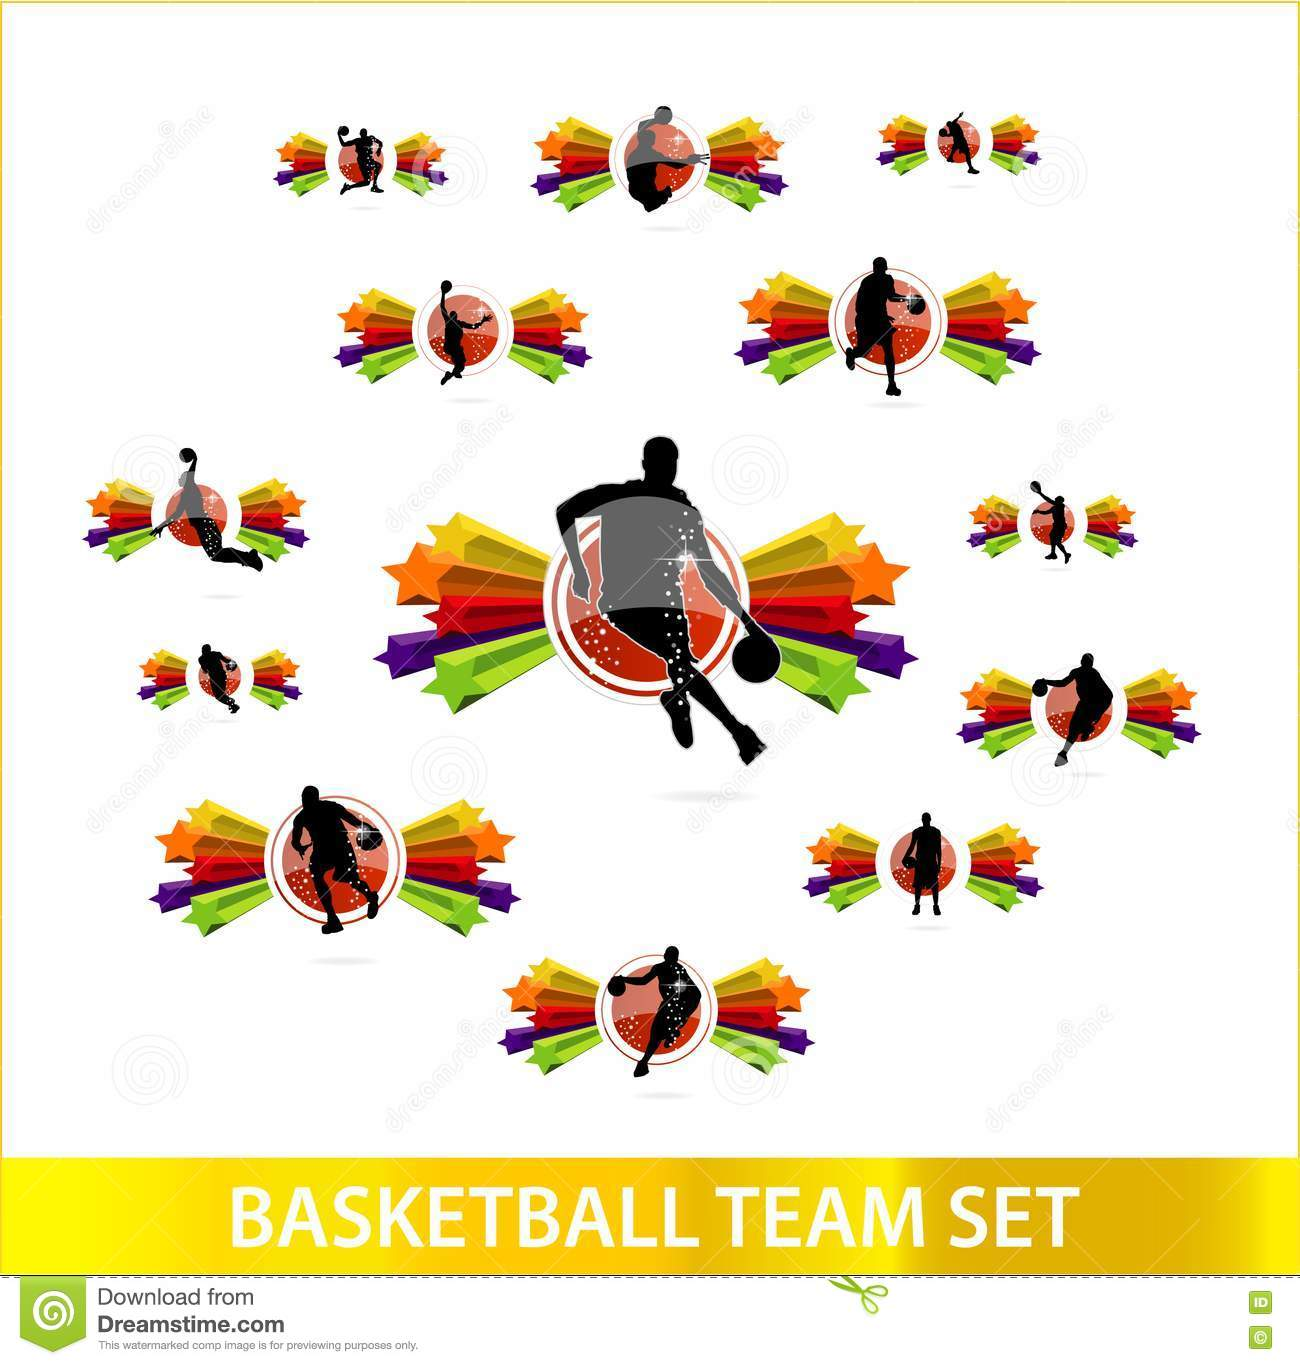 colored stars of basketball team set royalty free stock